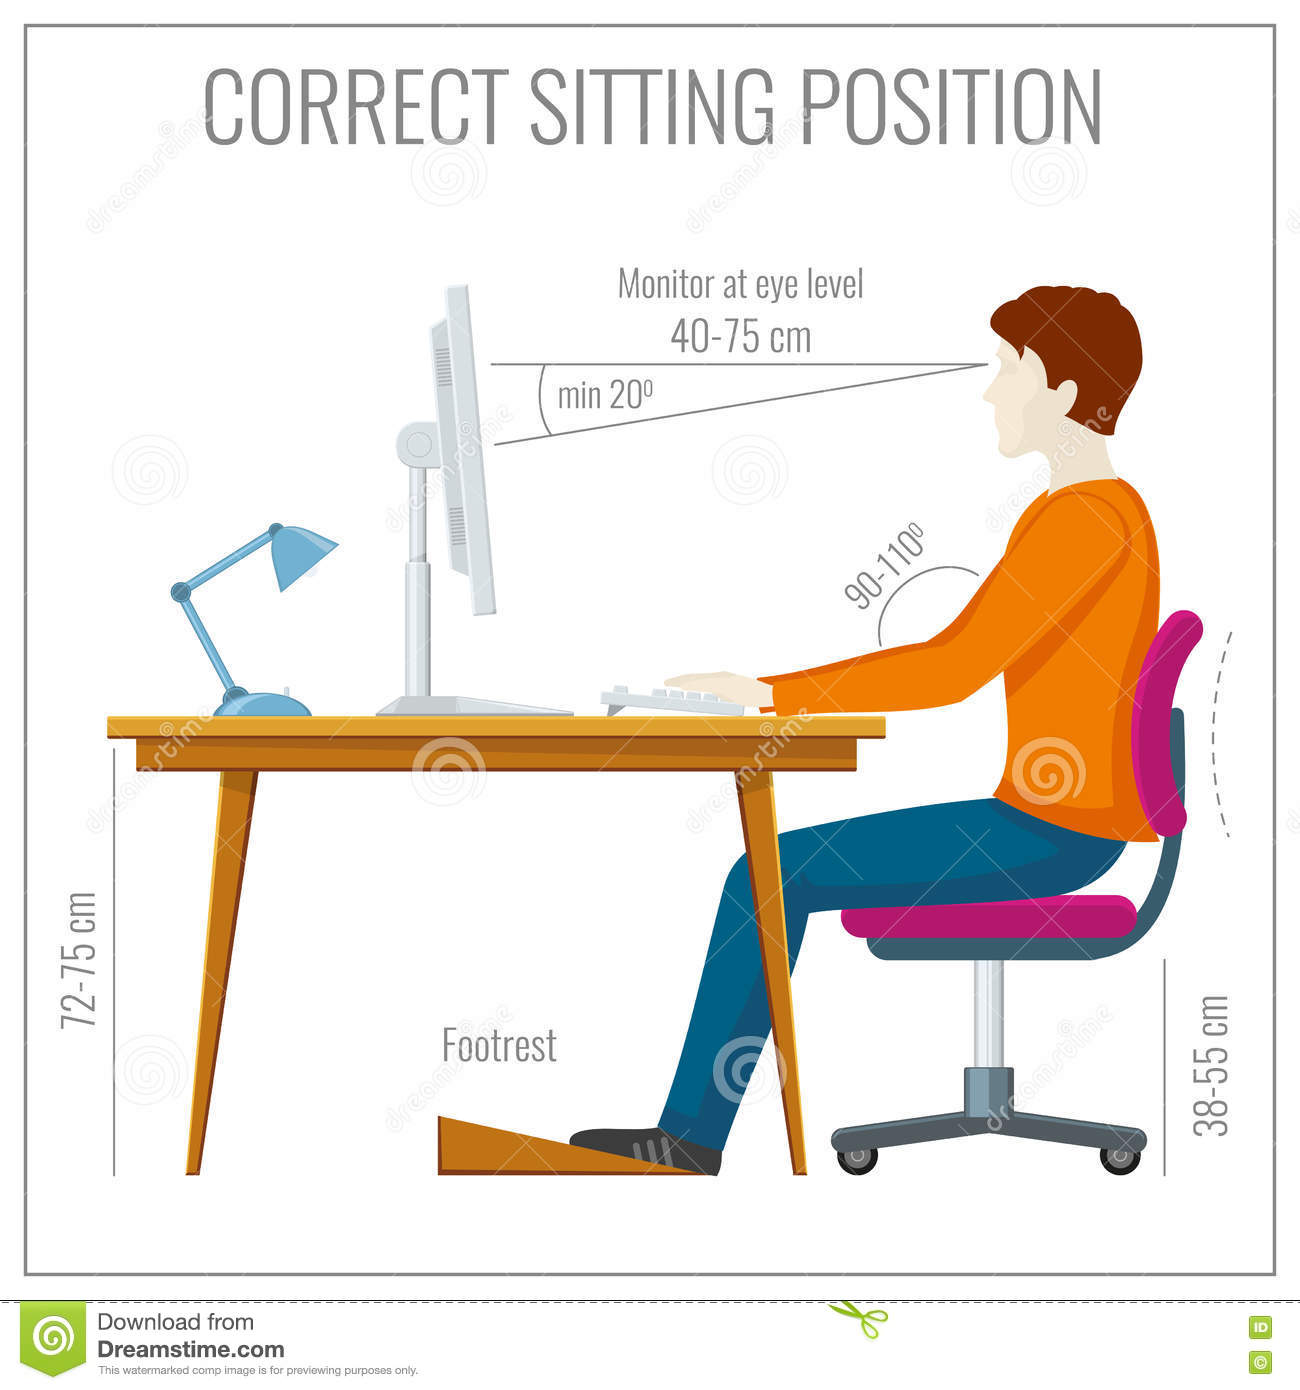 proper chair posture at computer plastic patio chairs walmart correct spine sitting vector